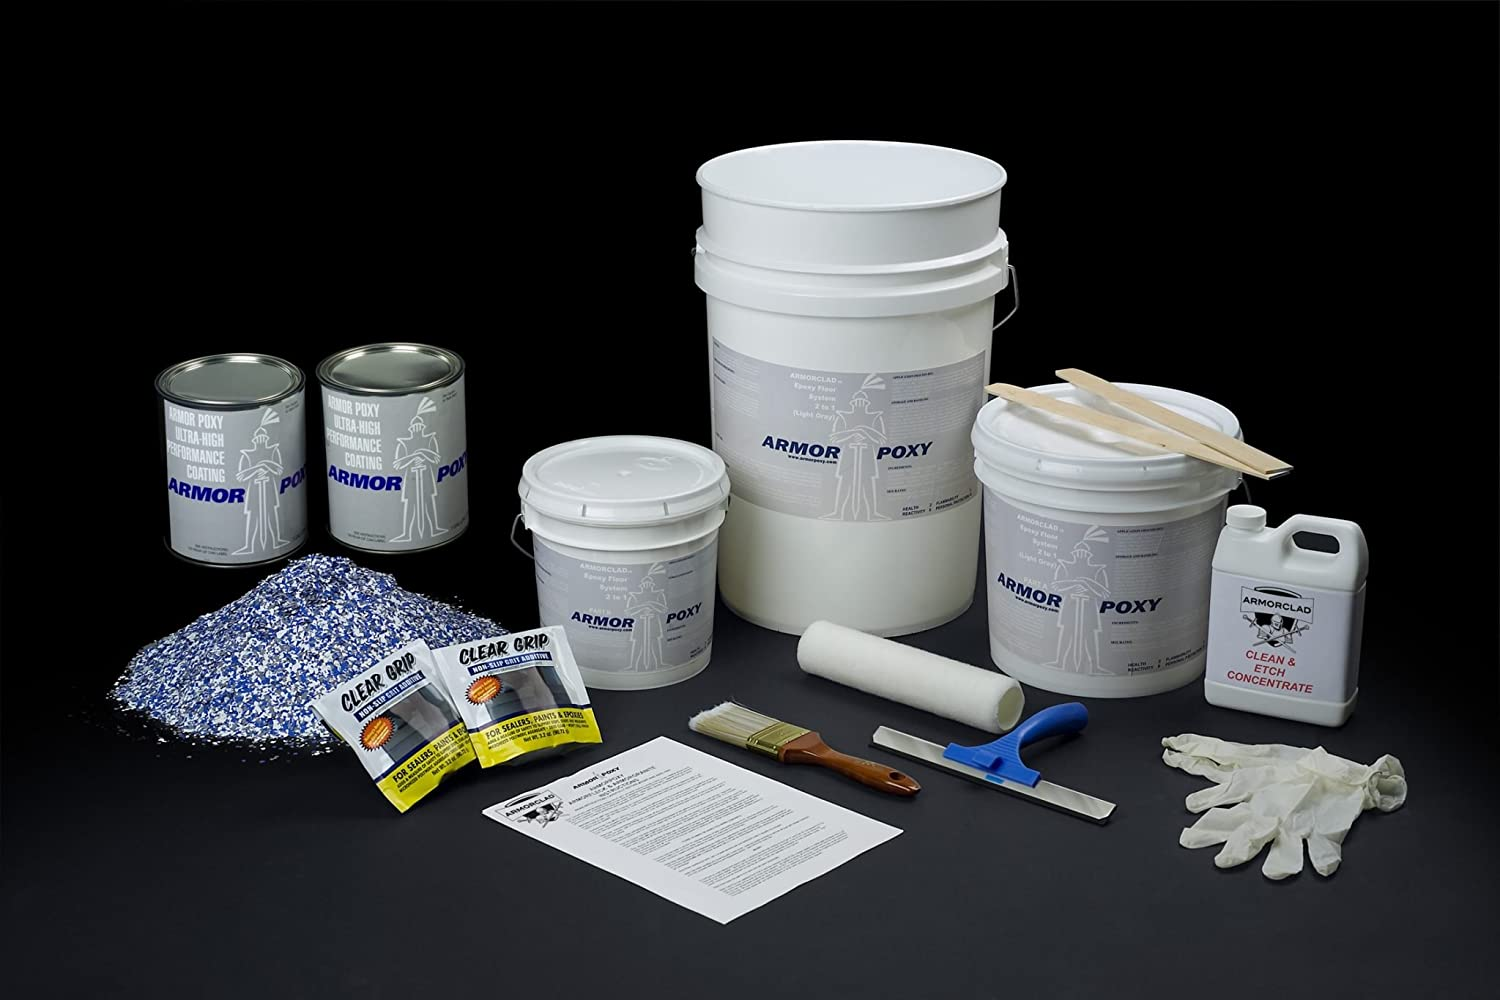 Armorclad 600 Epoxy for Tabletops